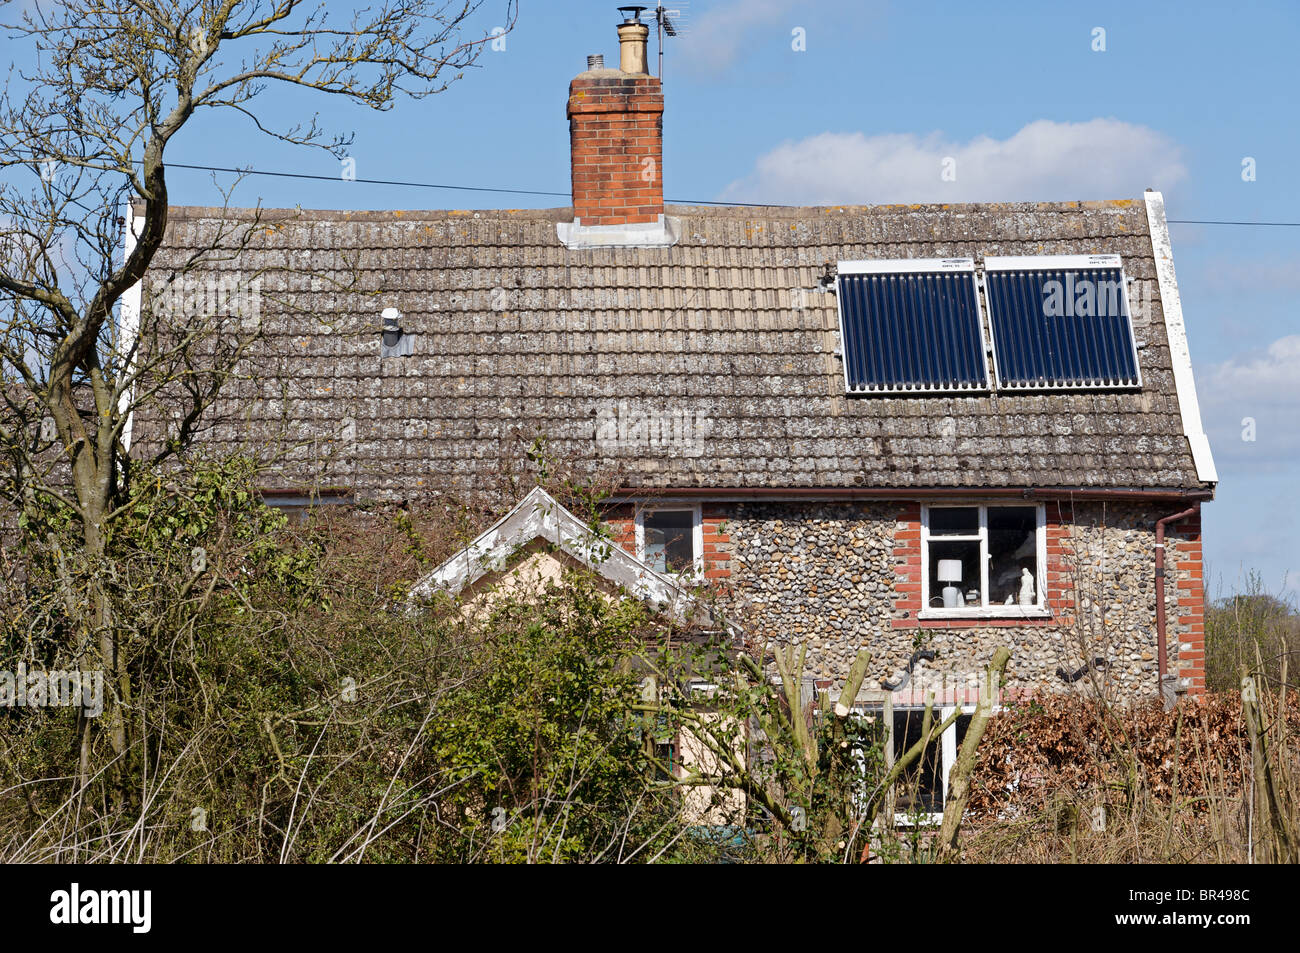 House with solar thermal evacuated vacuum tubes for the hot water heating system Stock Photo